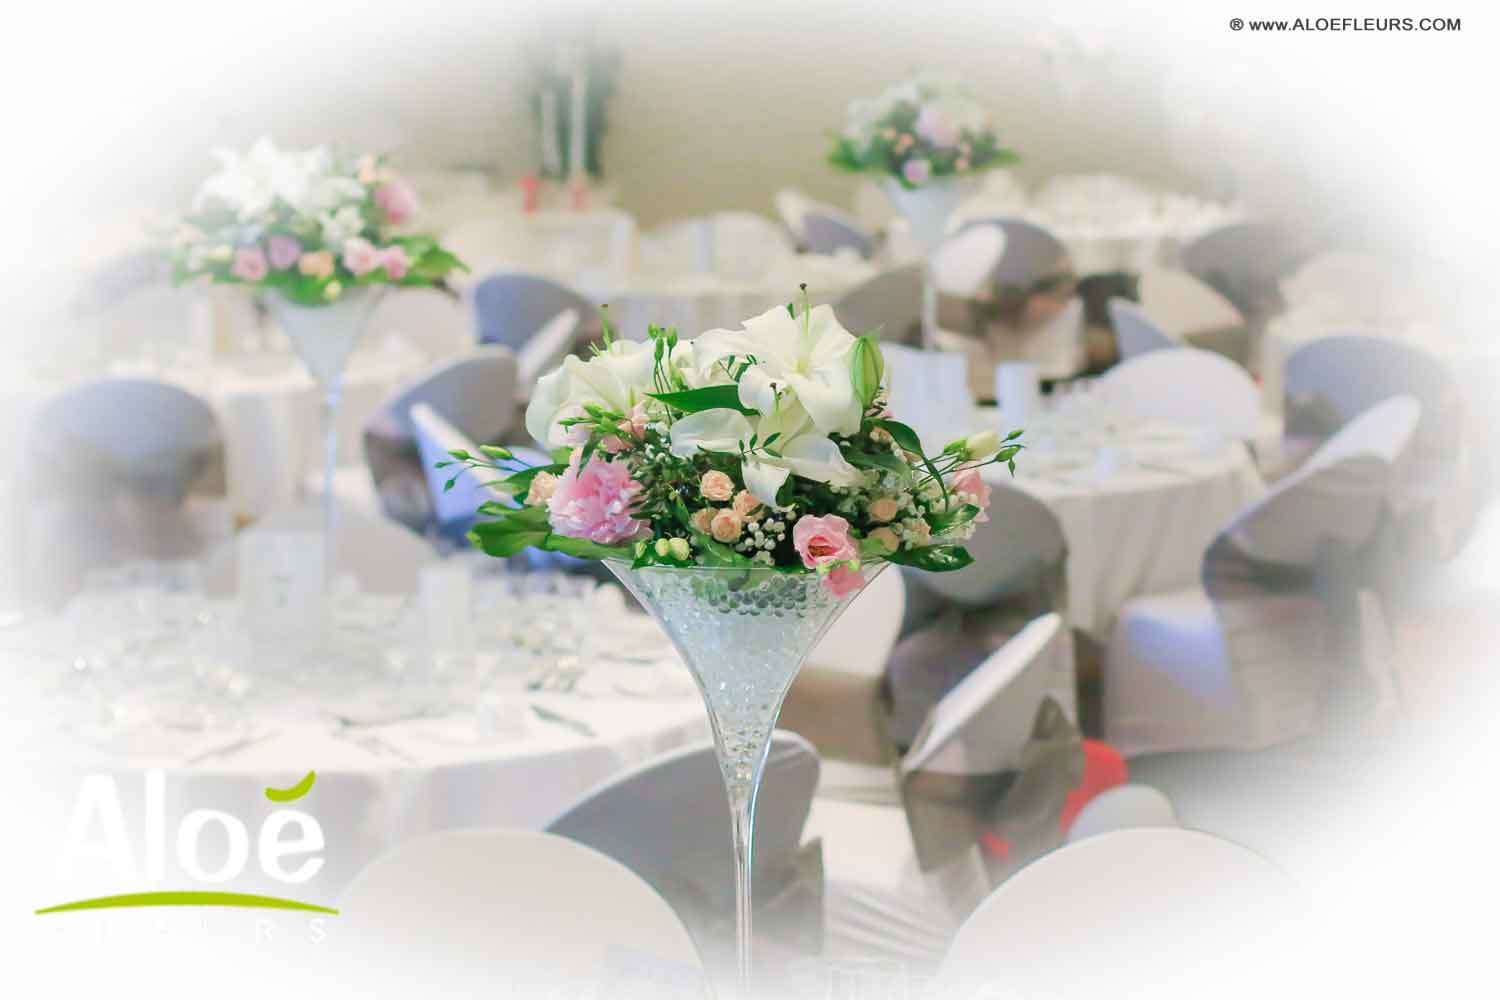 Compositions De Table Salle Mariage Novotel  Contemporain 6